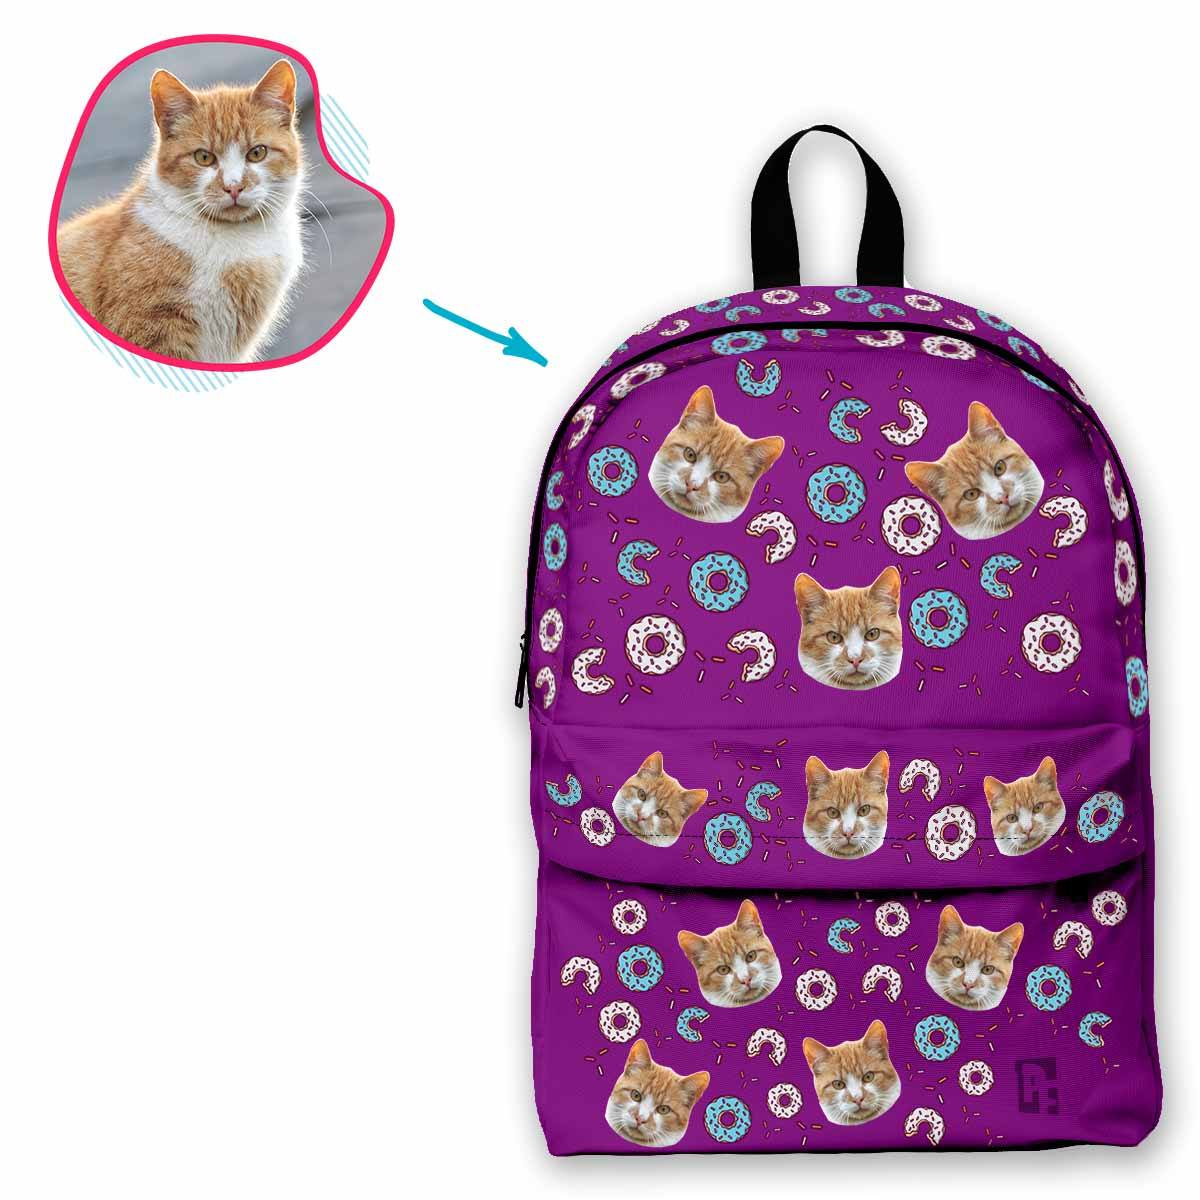 purple Donuts classic backpack personalized with photo of face printed on it